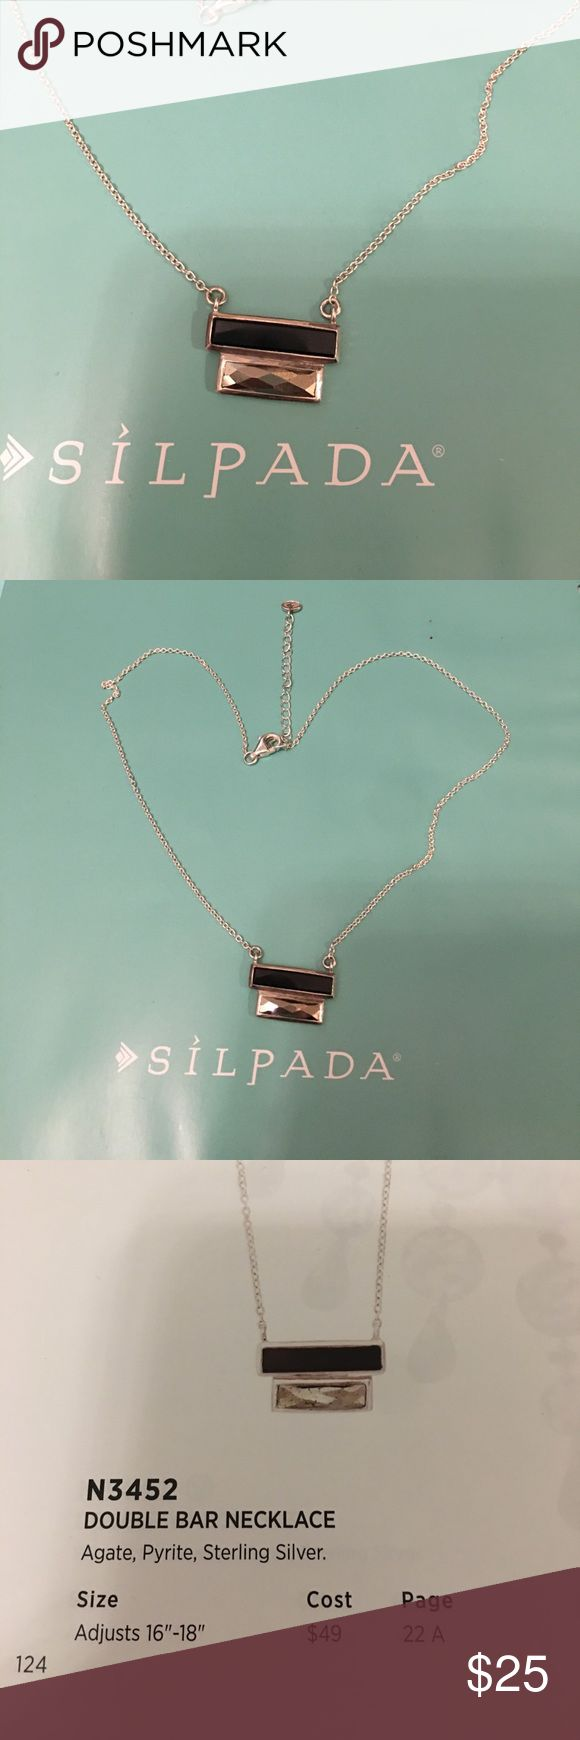 Silpada designs double bar necklace sterling Silpada designs double bar necklace sterling silver. New. Never worn. Silpada Jewelry Necklaces